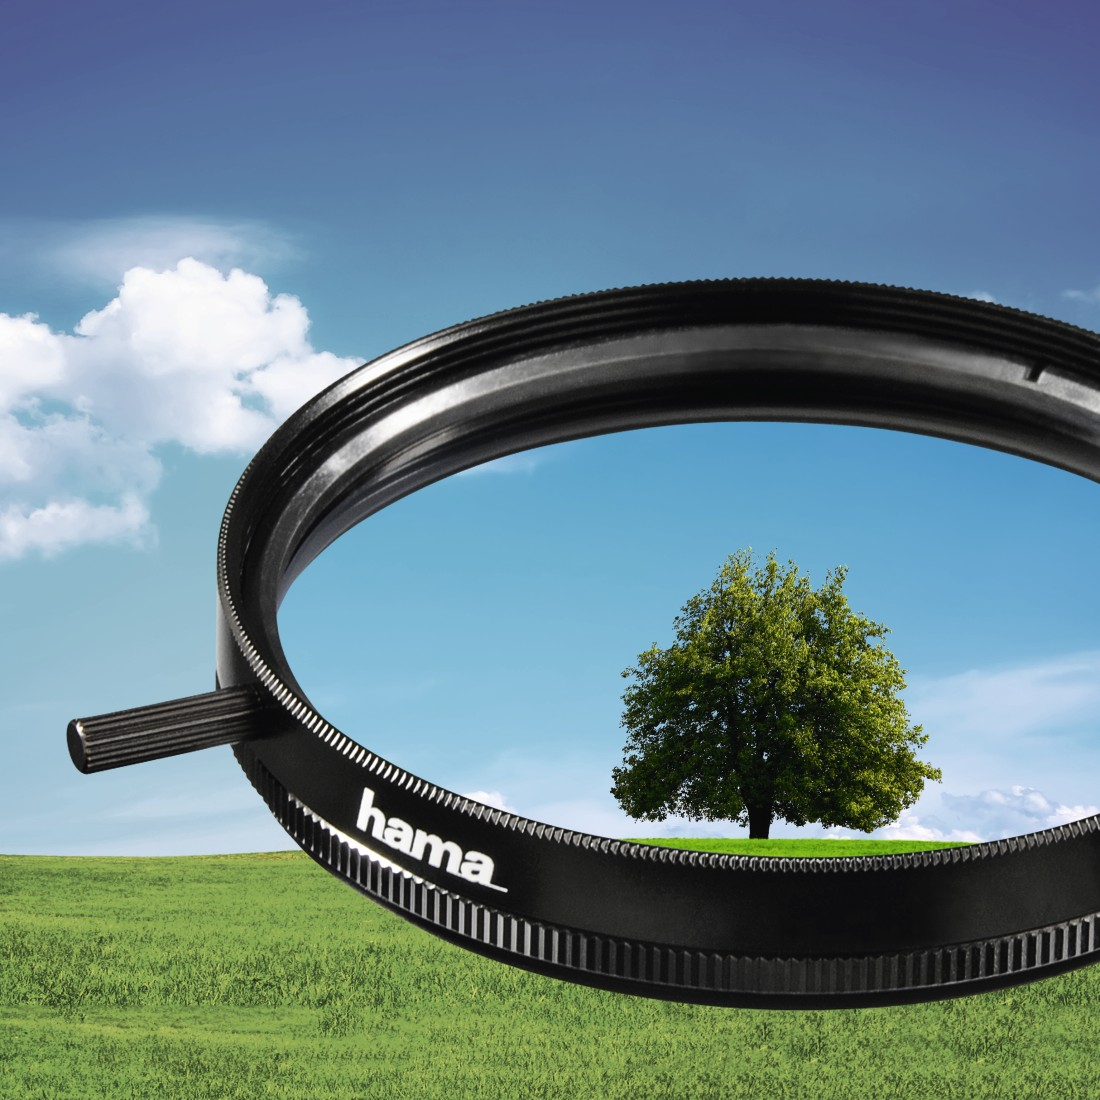 awx High-Res Appliance - Hama, Polarizing Filter, circular, AR coated, 77.0 mm